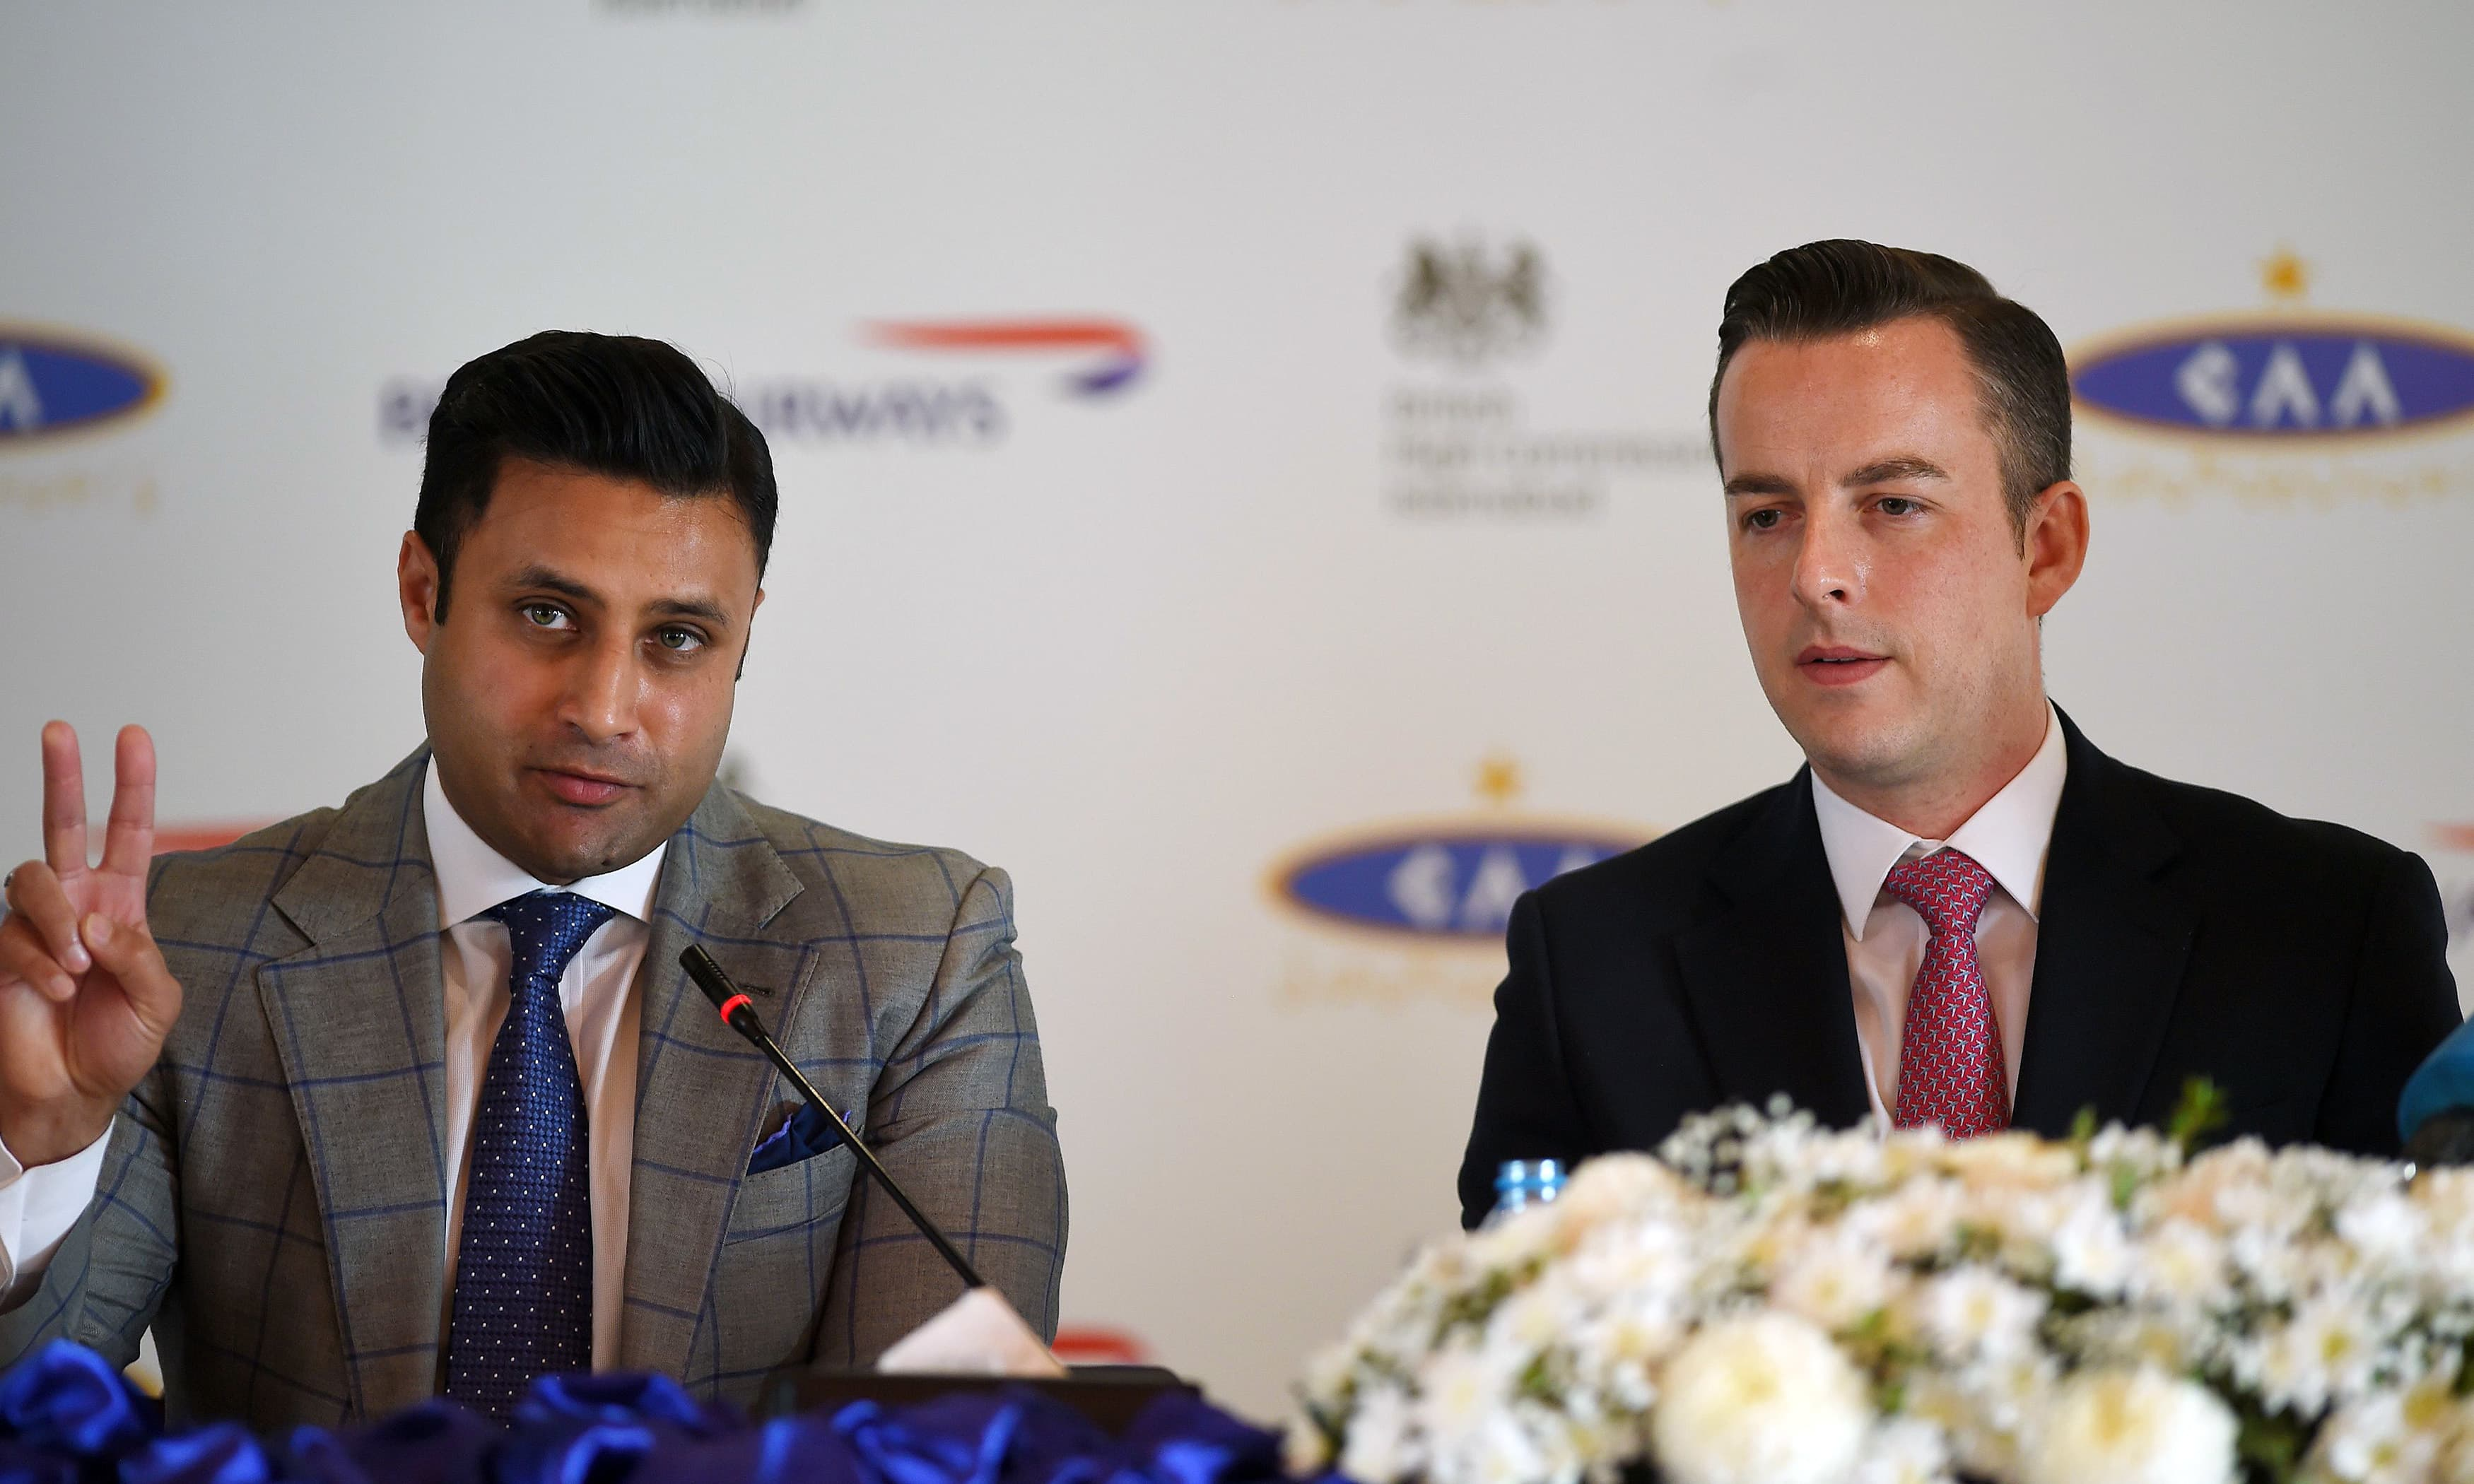 Special Assistant to PM for Overseas Pakistanis Zulfi Bukhari gestures as he sits along with Robert Williams, British Airways head of Sales for Asia Pacific and the Middle East during a press conference in Islamabad. —AFP